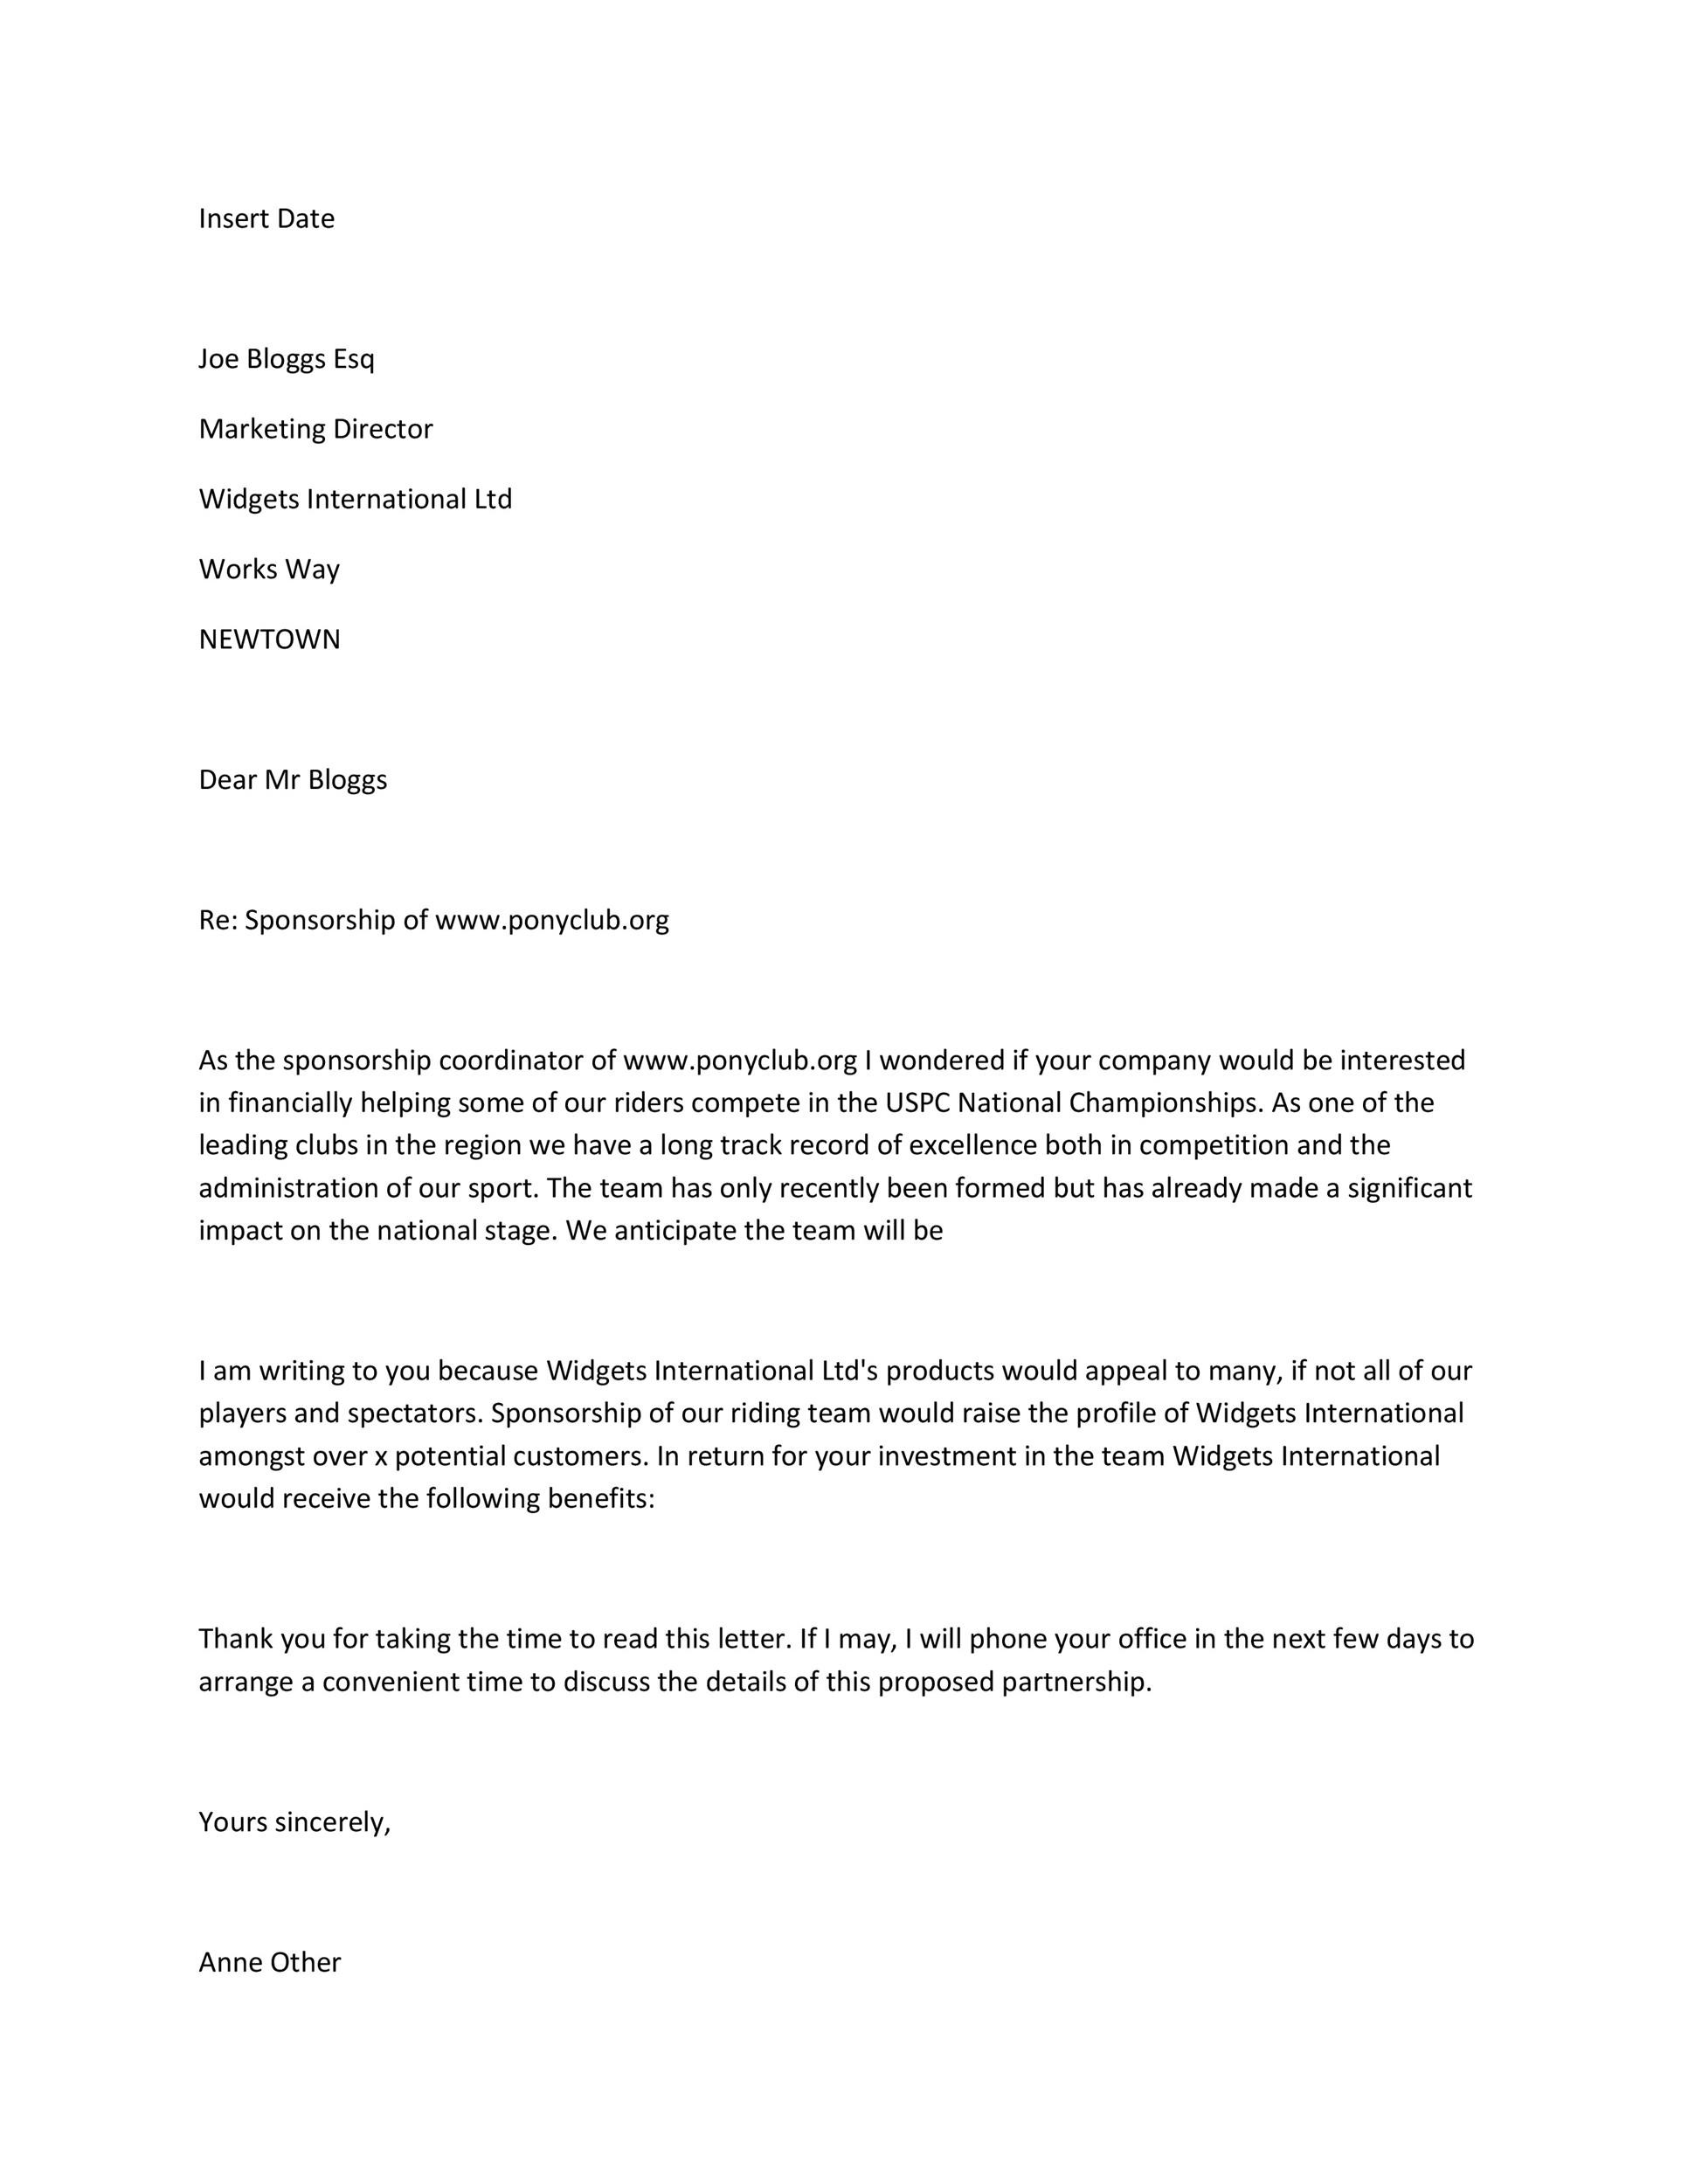 Proposal Request Letter Proposal Letter For Partnership Free – Sample Letter for Proposal